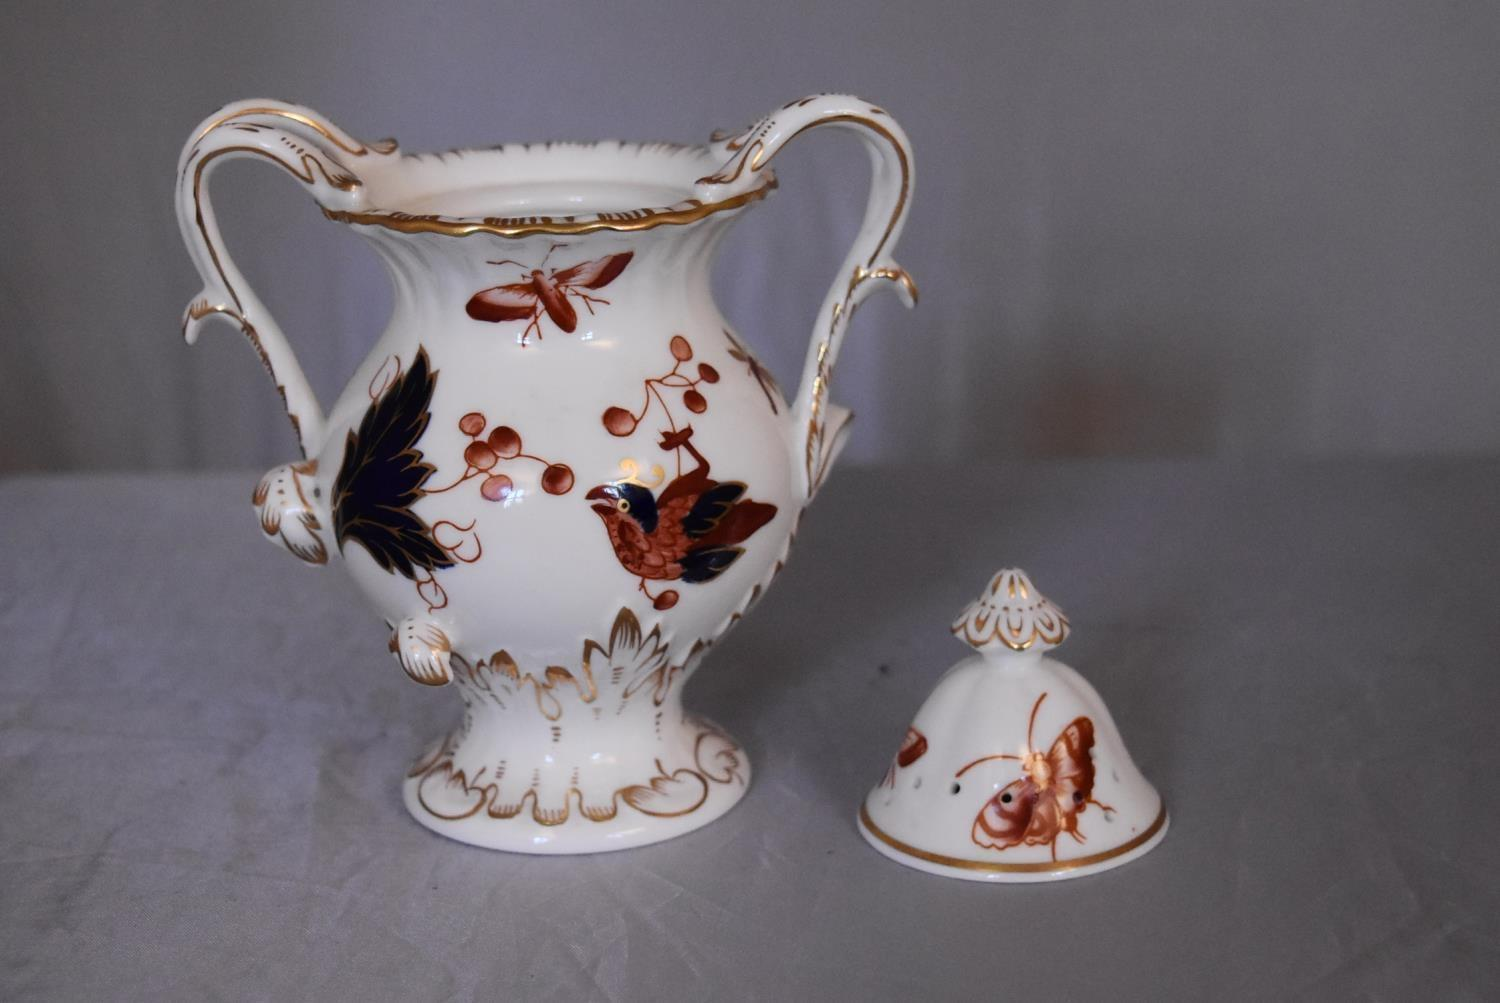 A collection of hand painted porcelain and ceramics. One Herend Ash tray with floral design and - Image 4 of 8